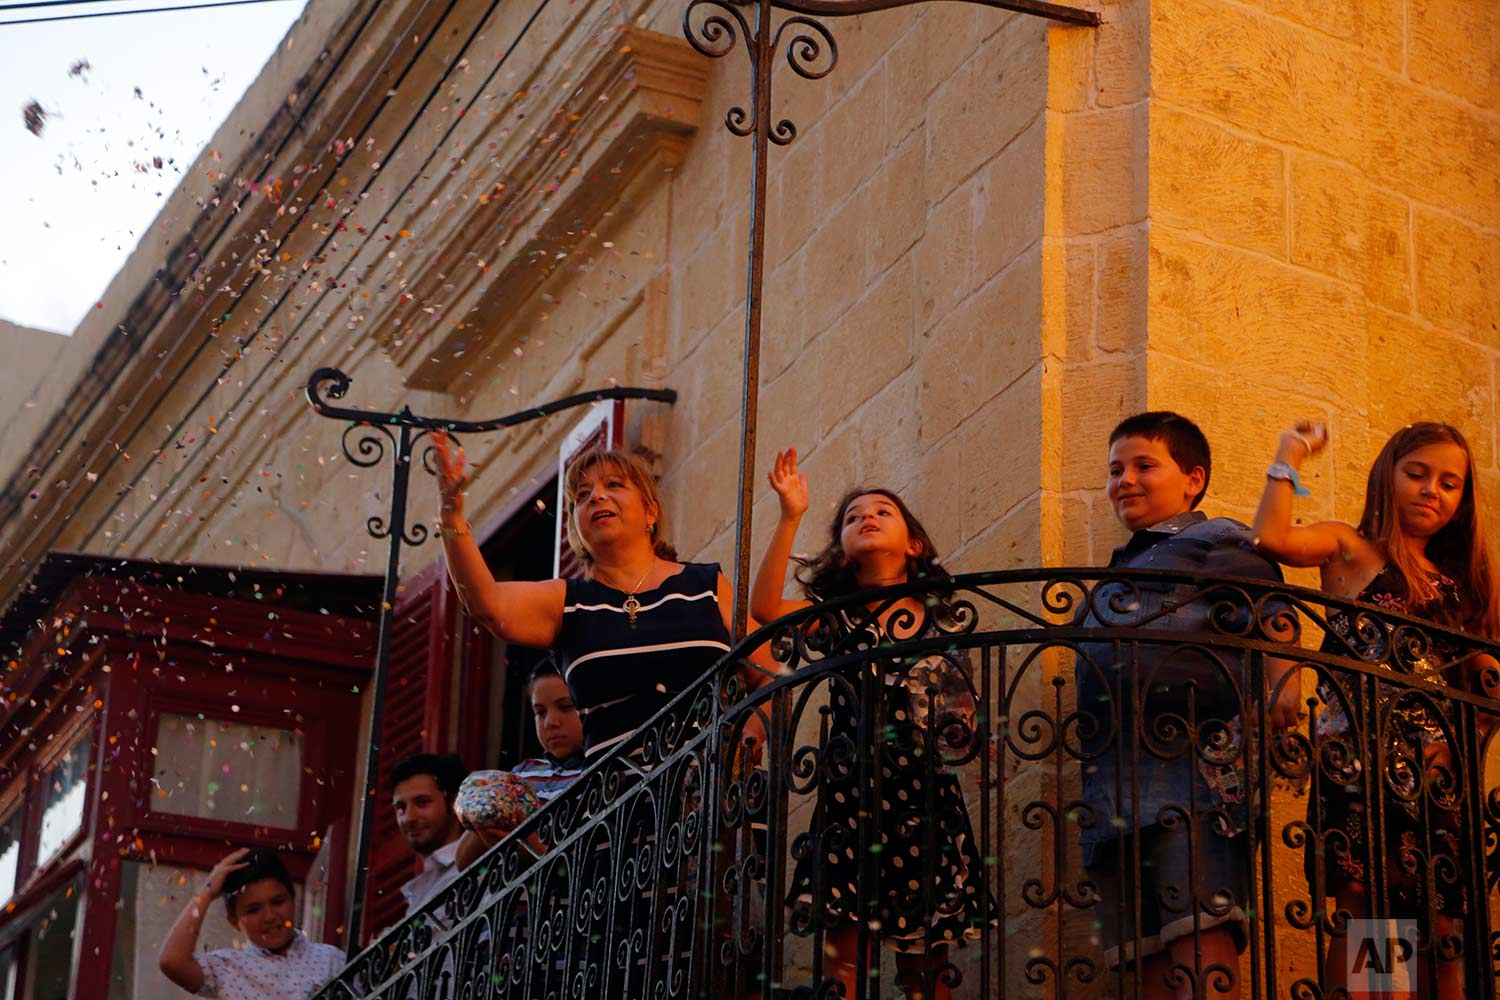 In this photo taken on Wednesday, Aug. 15, 2018, residents throw confetti on the statue of the Virgin Mary as it is carried through the streets of Rabat on the island of Gozo in the Maltese archipelago, during the feast day of the Assumption of Mary. (AP Photo/Niranjan Shrestha)